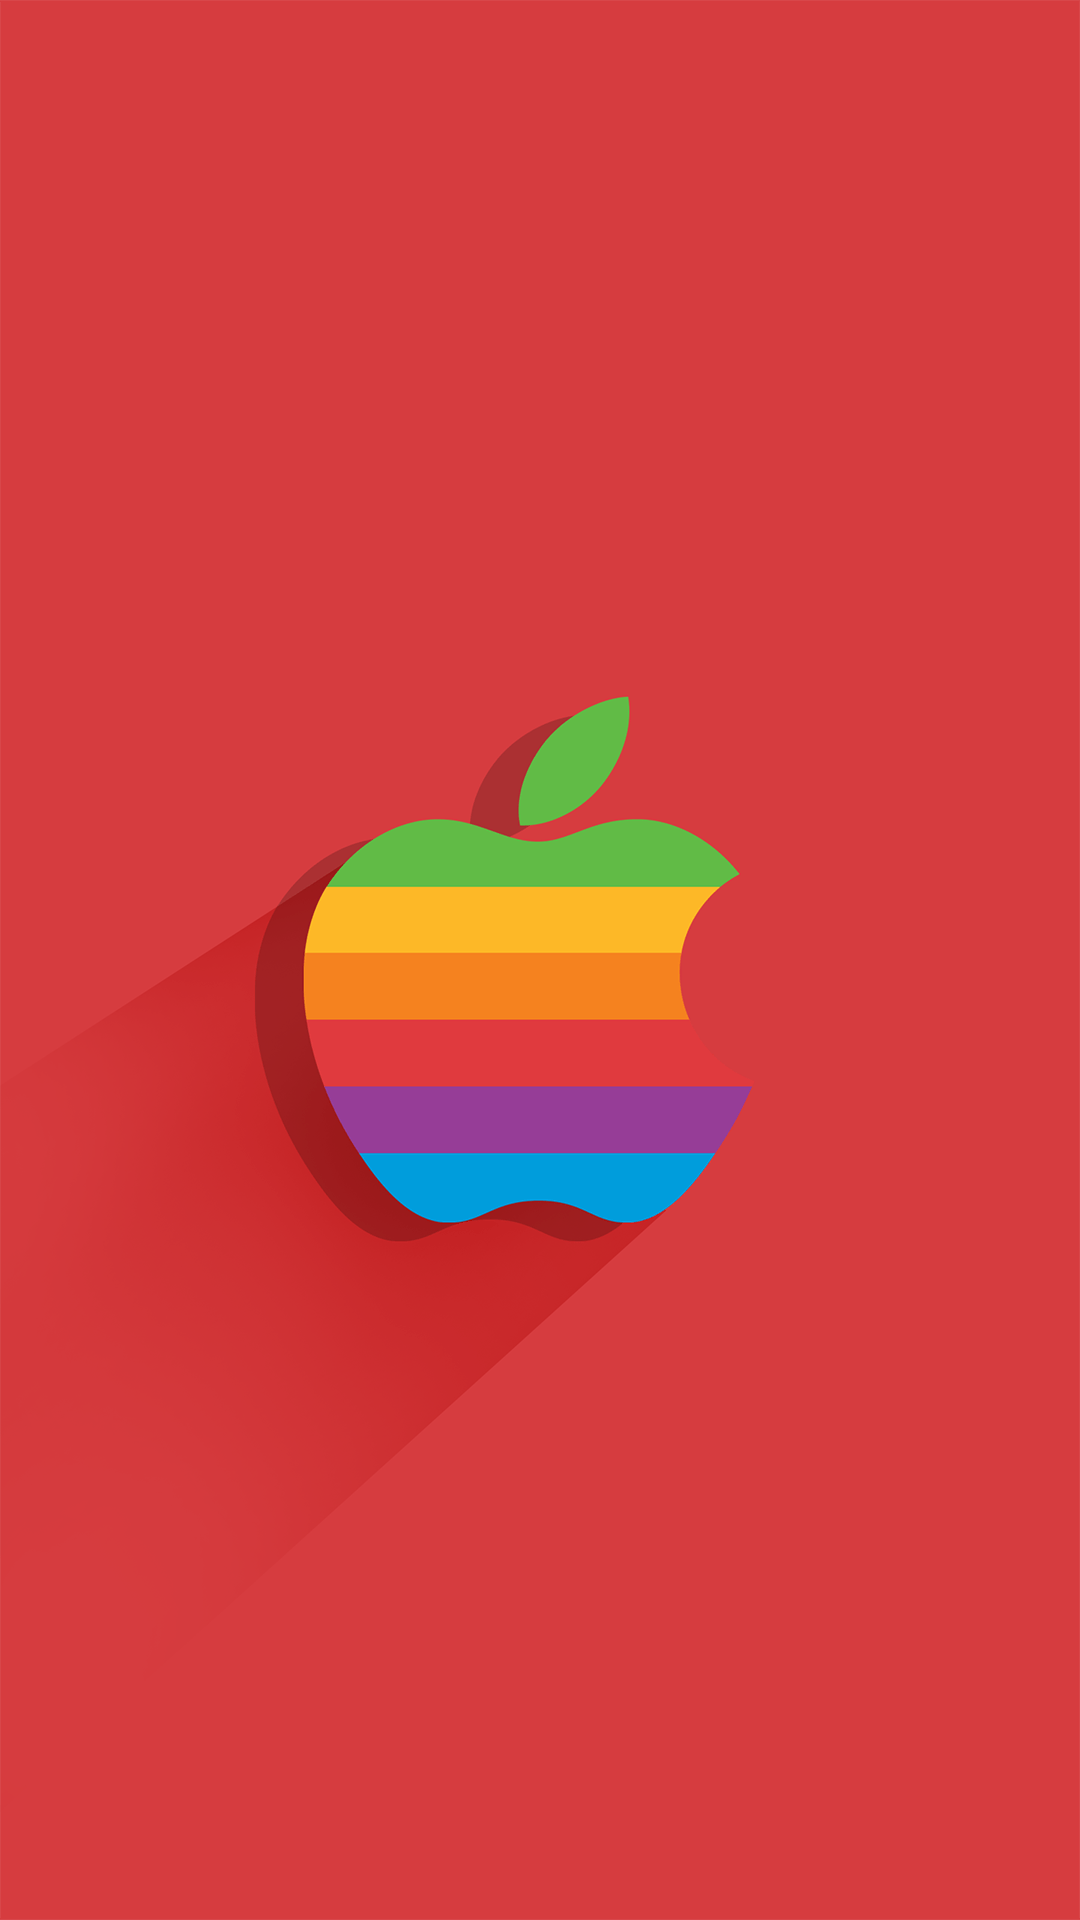 Apple Logo Wallpapers iPhone 6S Plus by lirking20